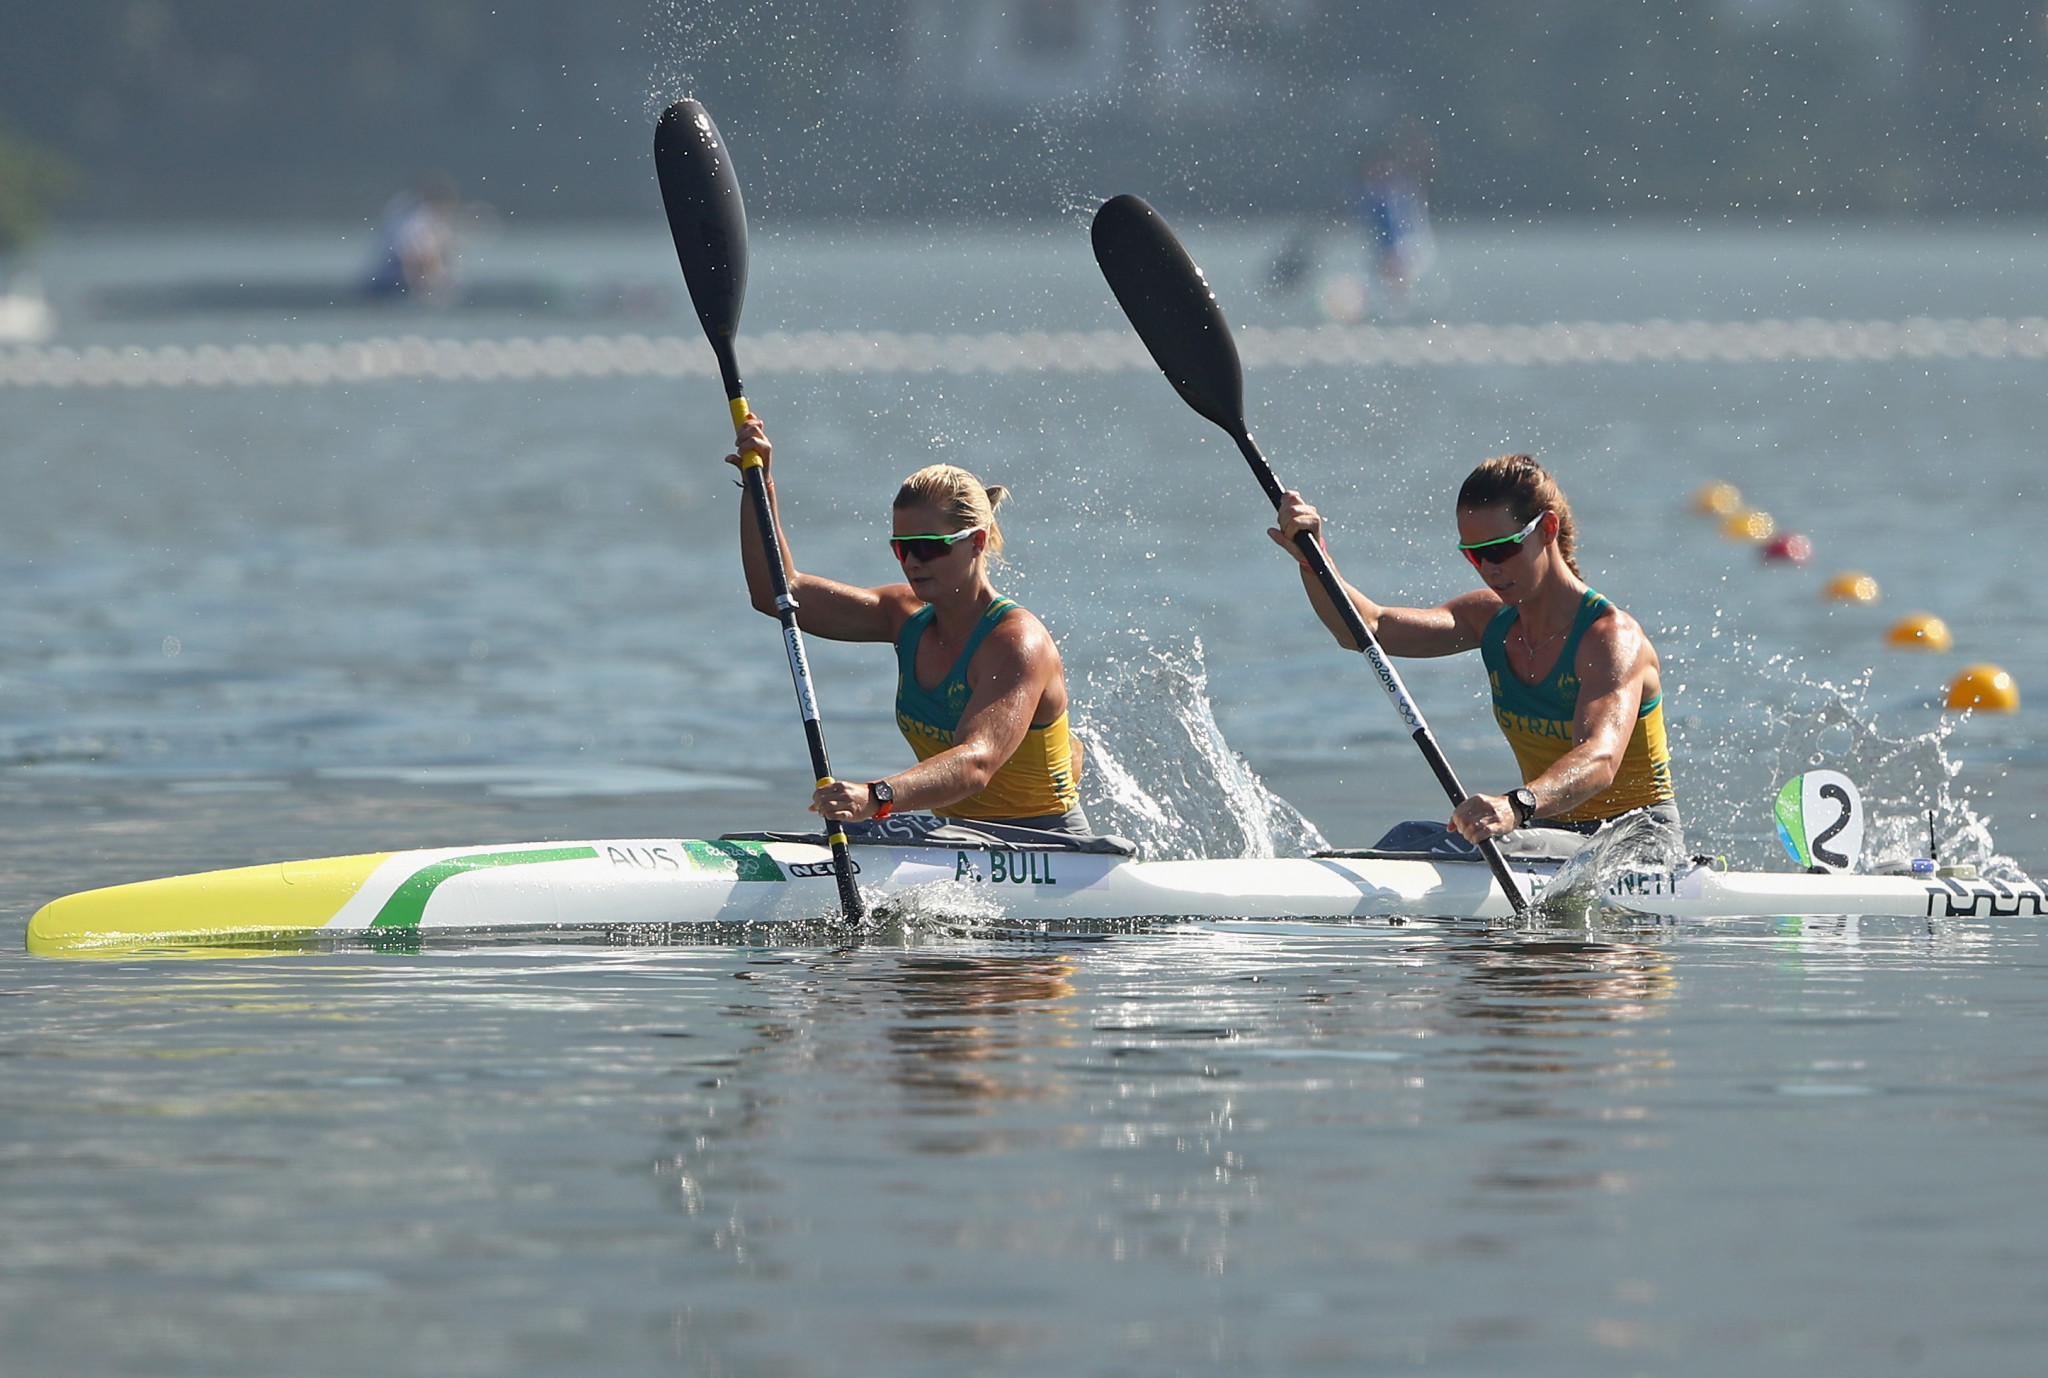 One seminar will focus on female canoeists specifically ©Getty Images